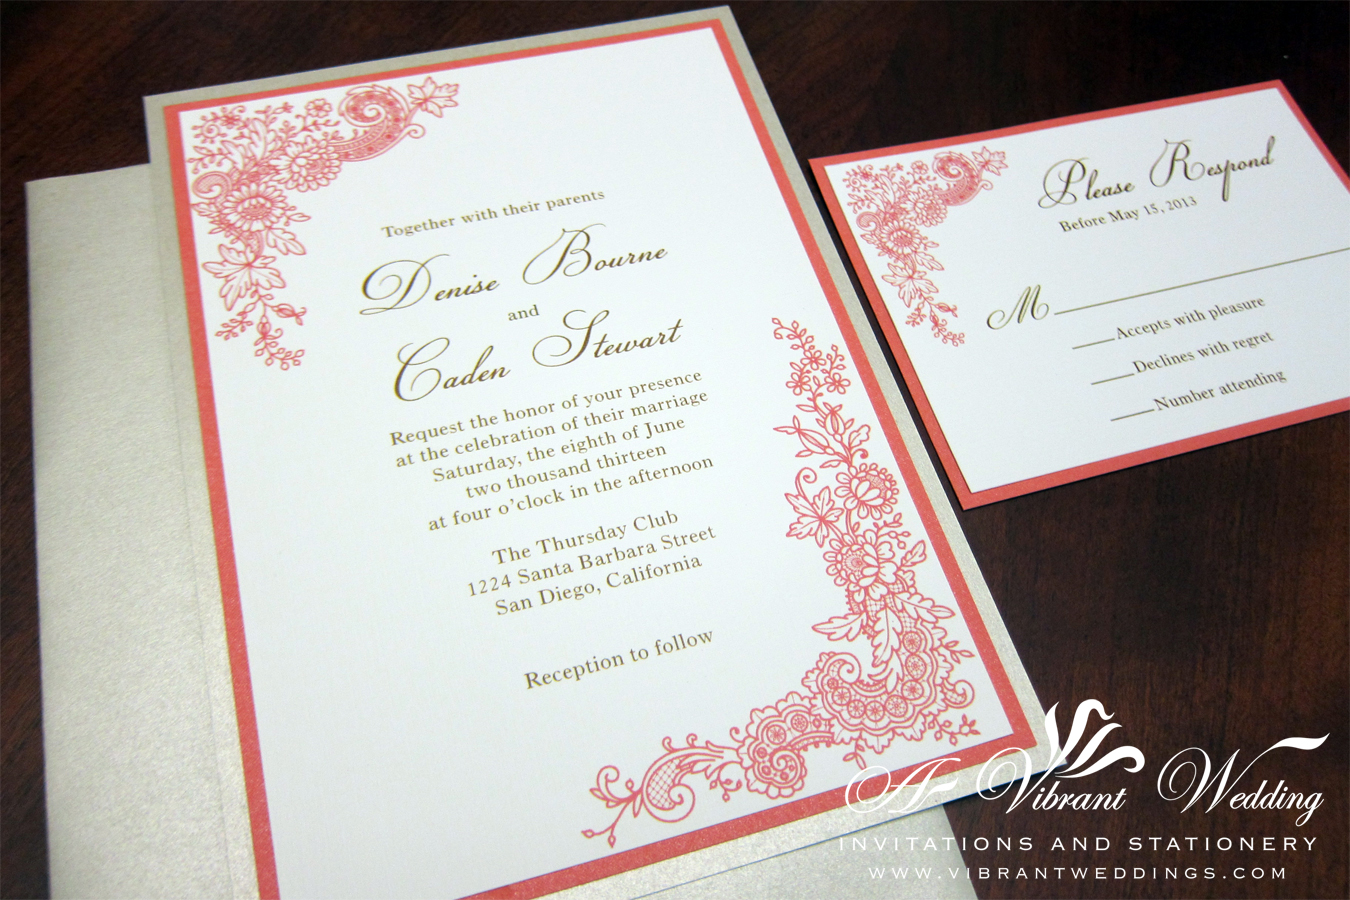 victorian wedding invitation � a vibrant wedding